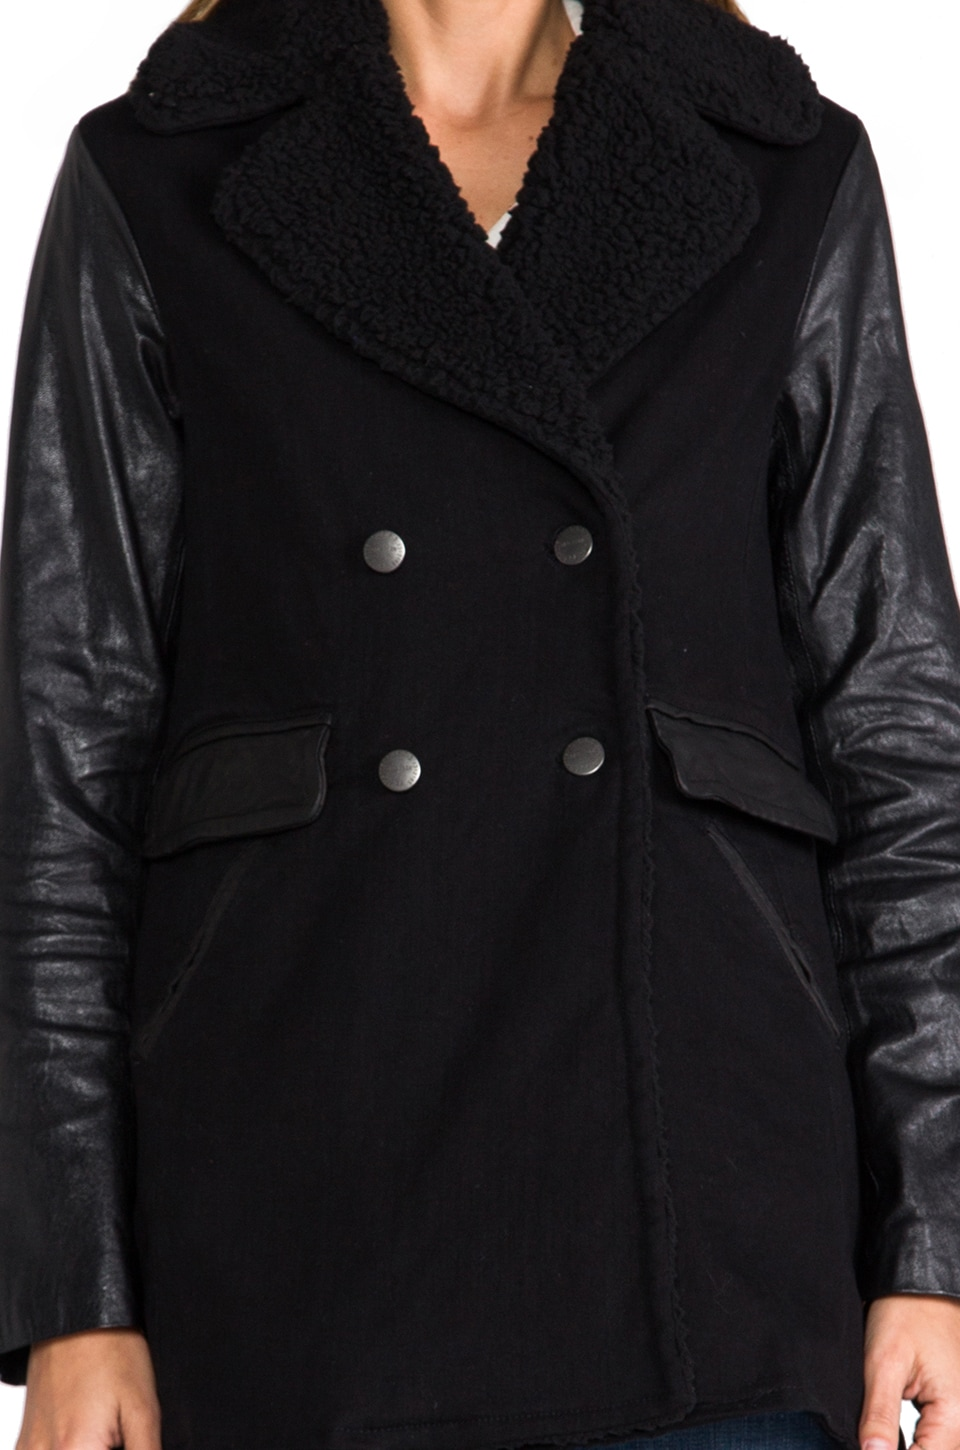 Current/Elliott The Longline Peacoat in Black